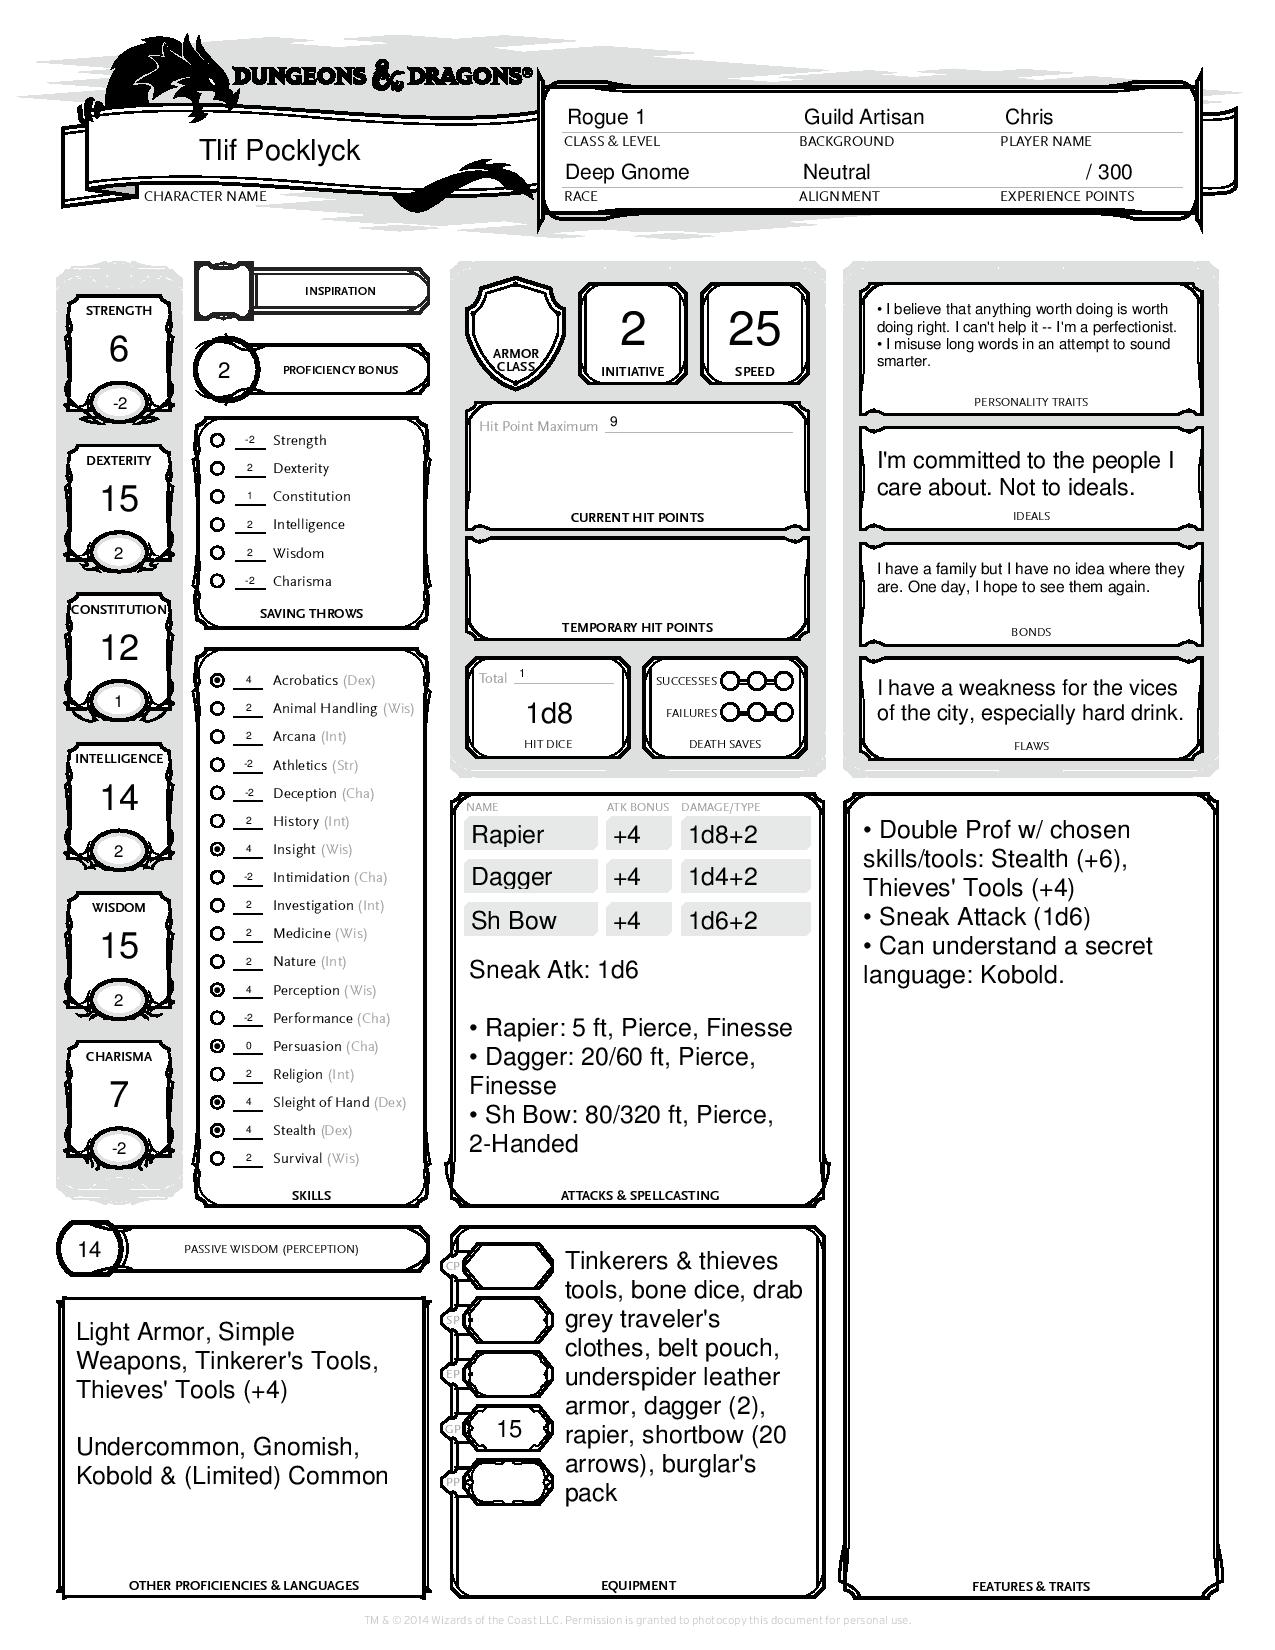 {CEPRA} Character Creation for the D&D 5e Play by Forum